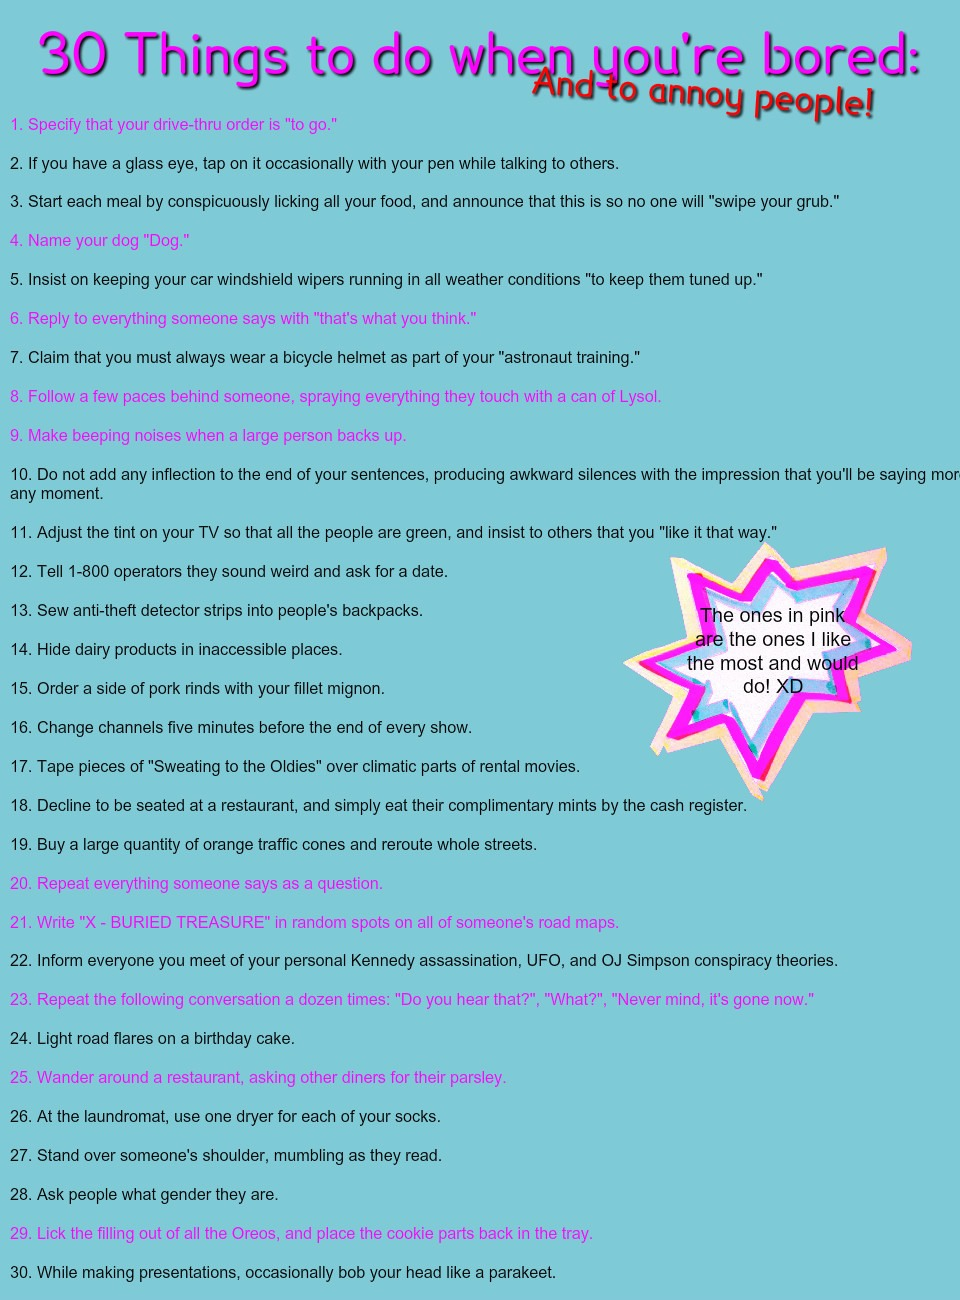 30 thing to do when your bored (the ones in pink are my favorites)